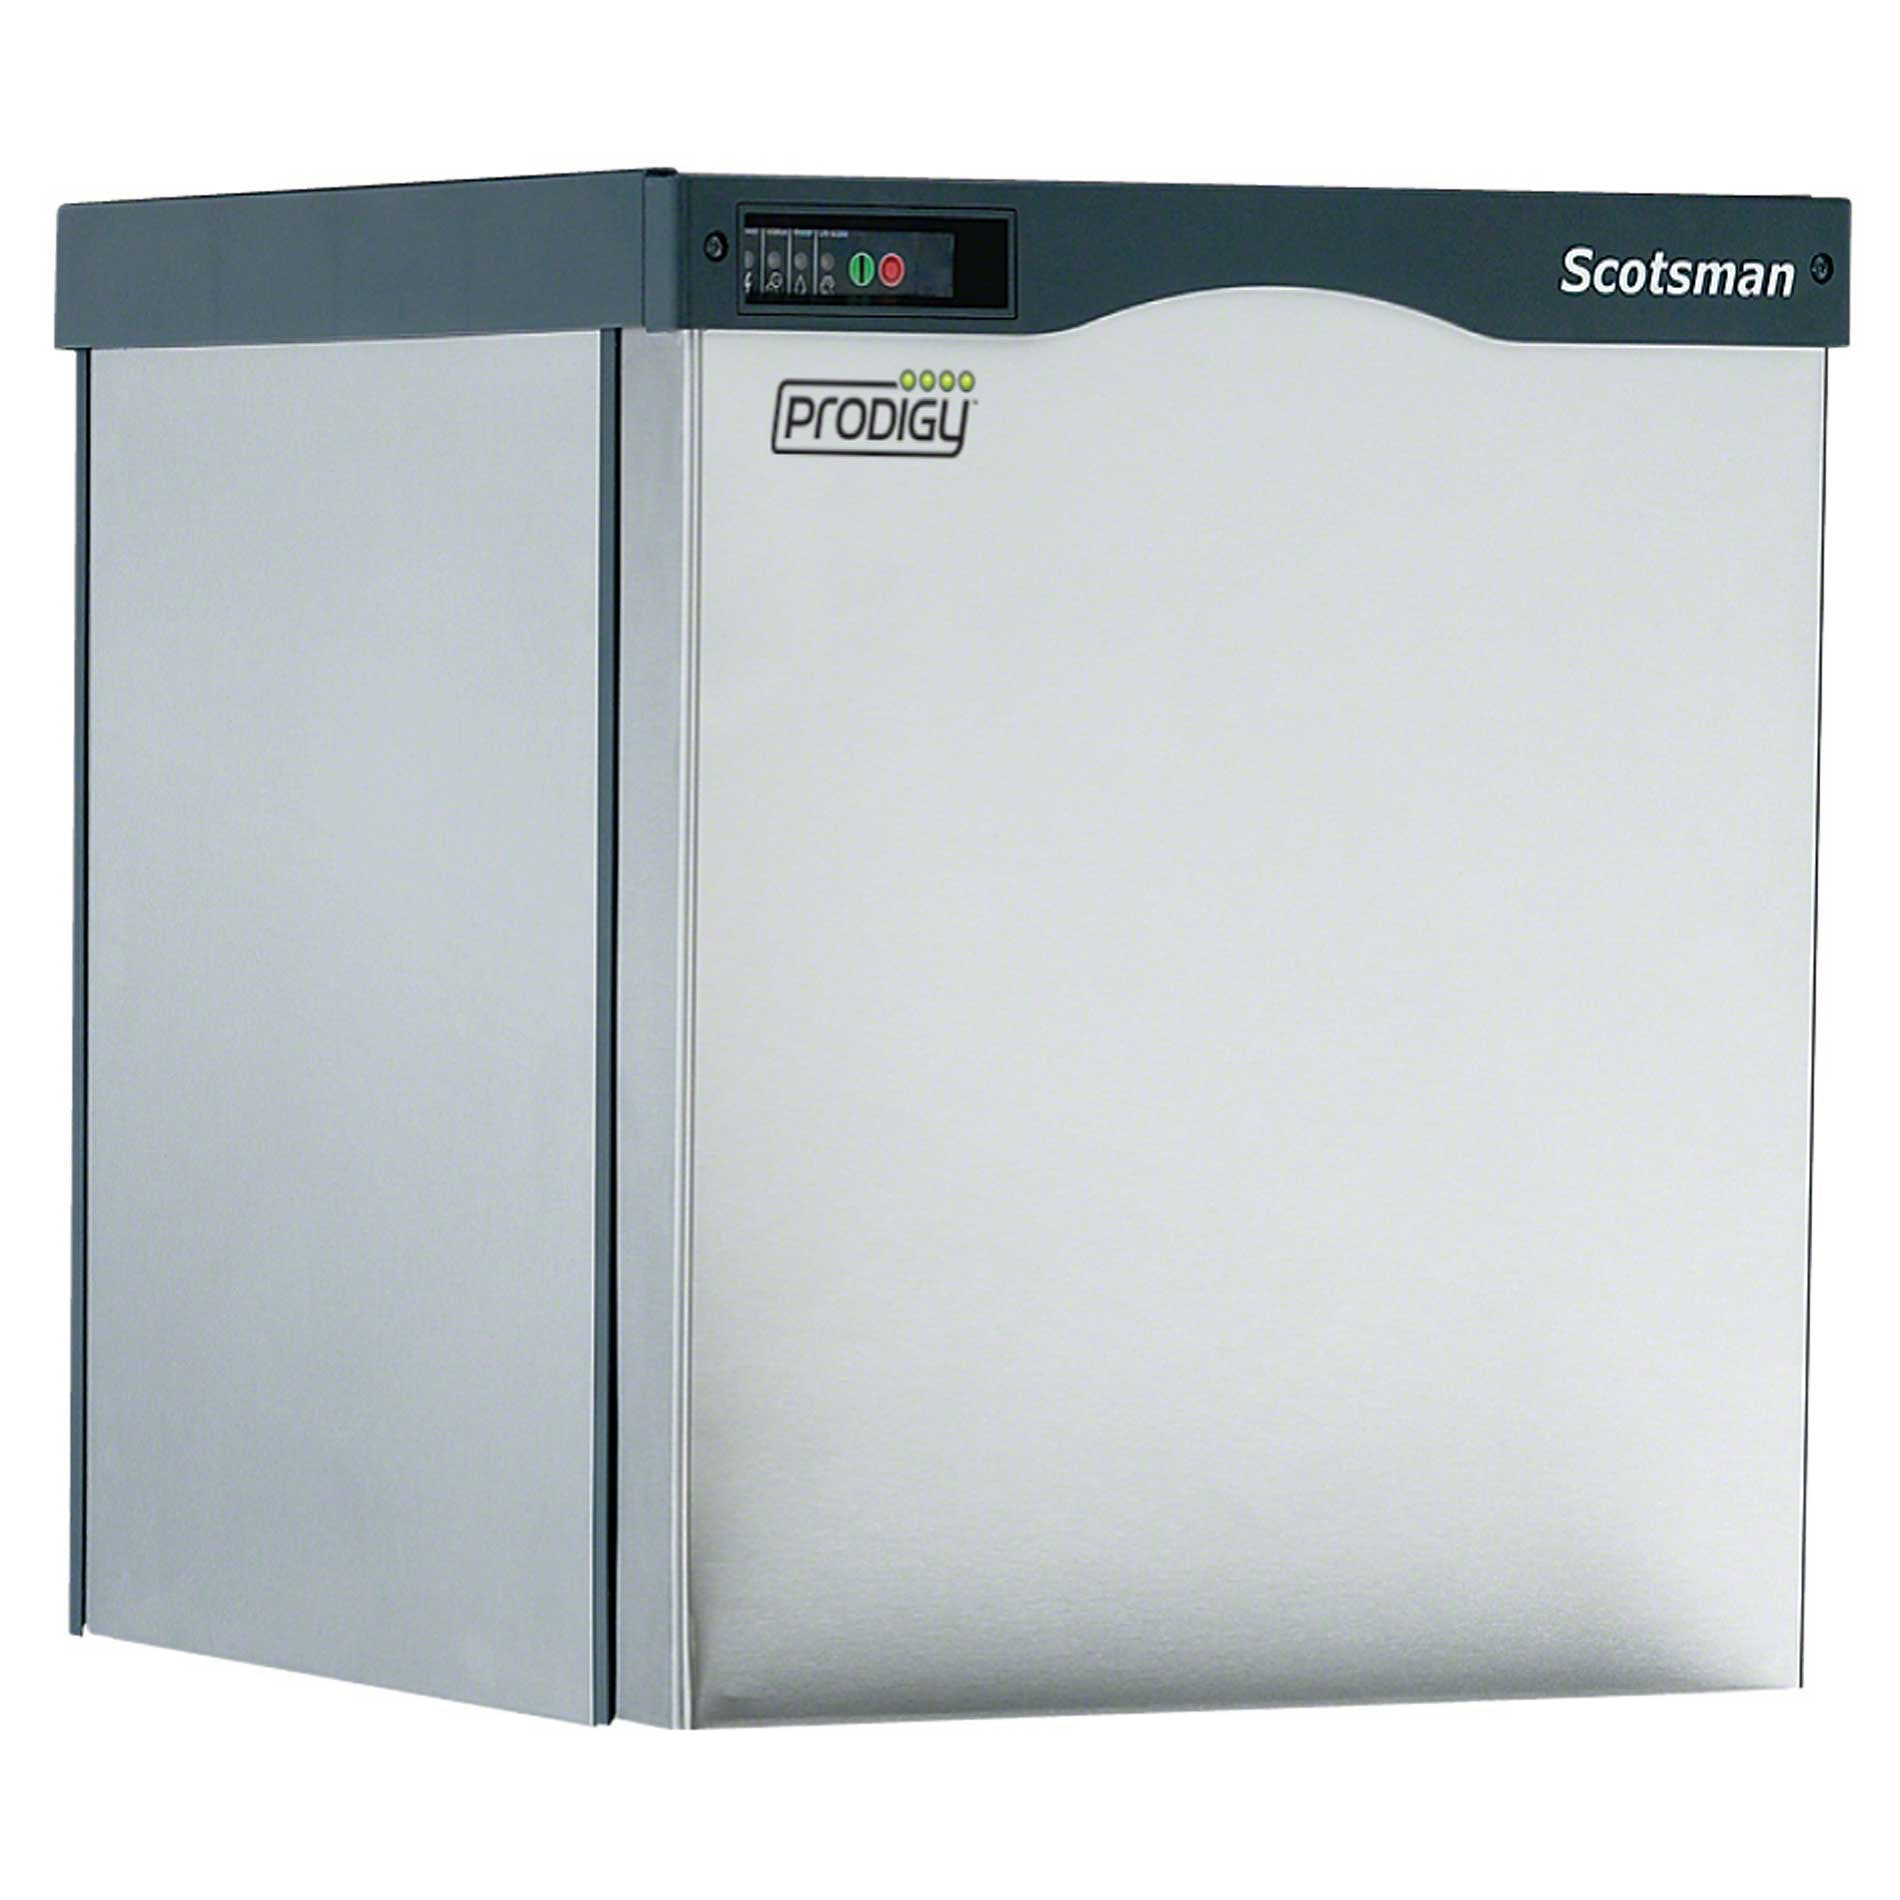 Scotsman - EH222SL-1 1000 lb Remote Cooled Modular Cube Ice Machine - Prodigy® Series Ice machine sold by Food Service Warehouse